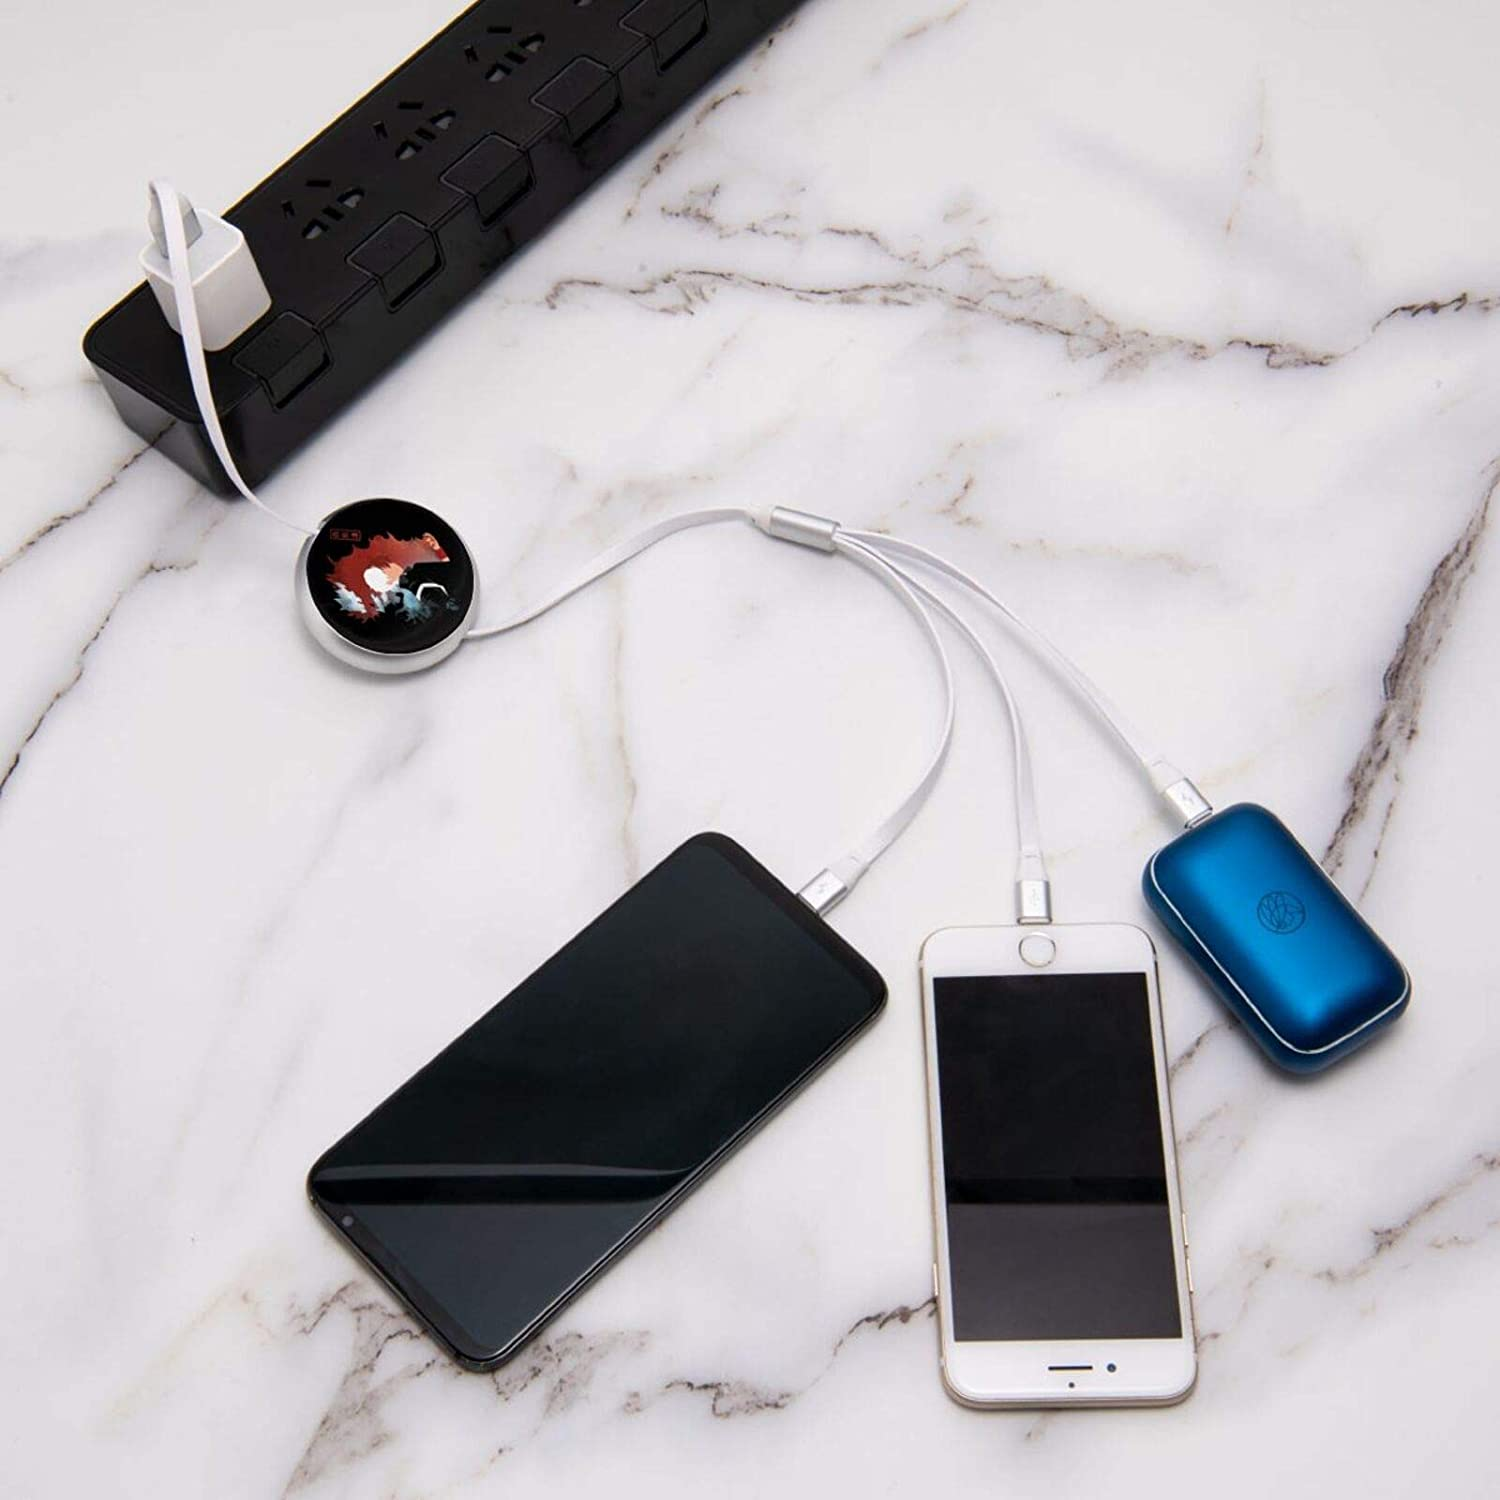 Hero Academi-a Todoroki Shoto 3 in 1 Retractable Multiple Charging Cable 3.0a Fast Charger Cord with Phone//Type C//Micro USB Charge Port Adapter Compatible with Cell Phones Tablets and More